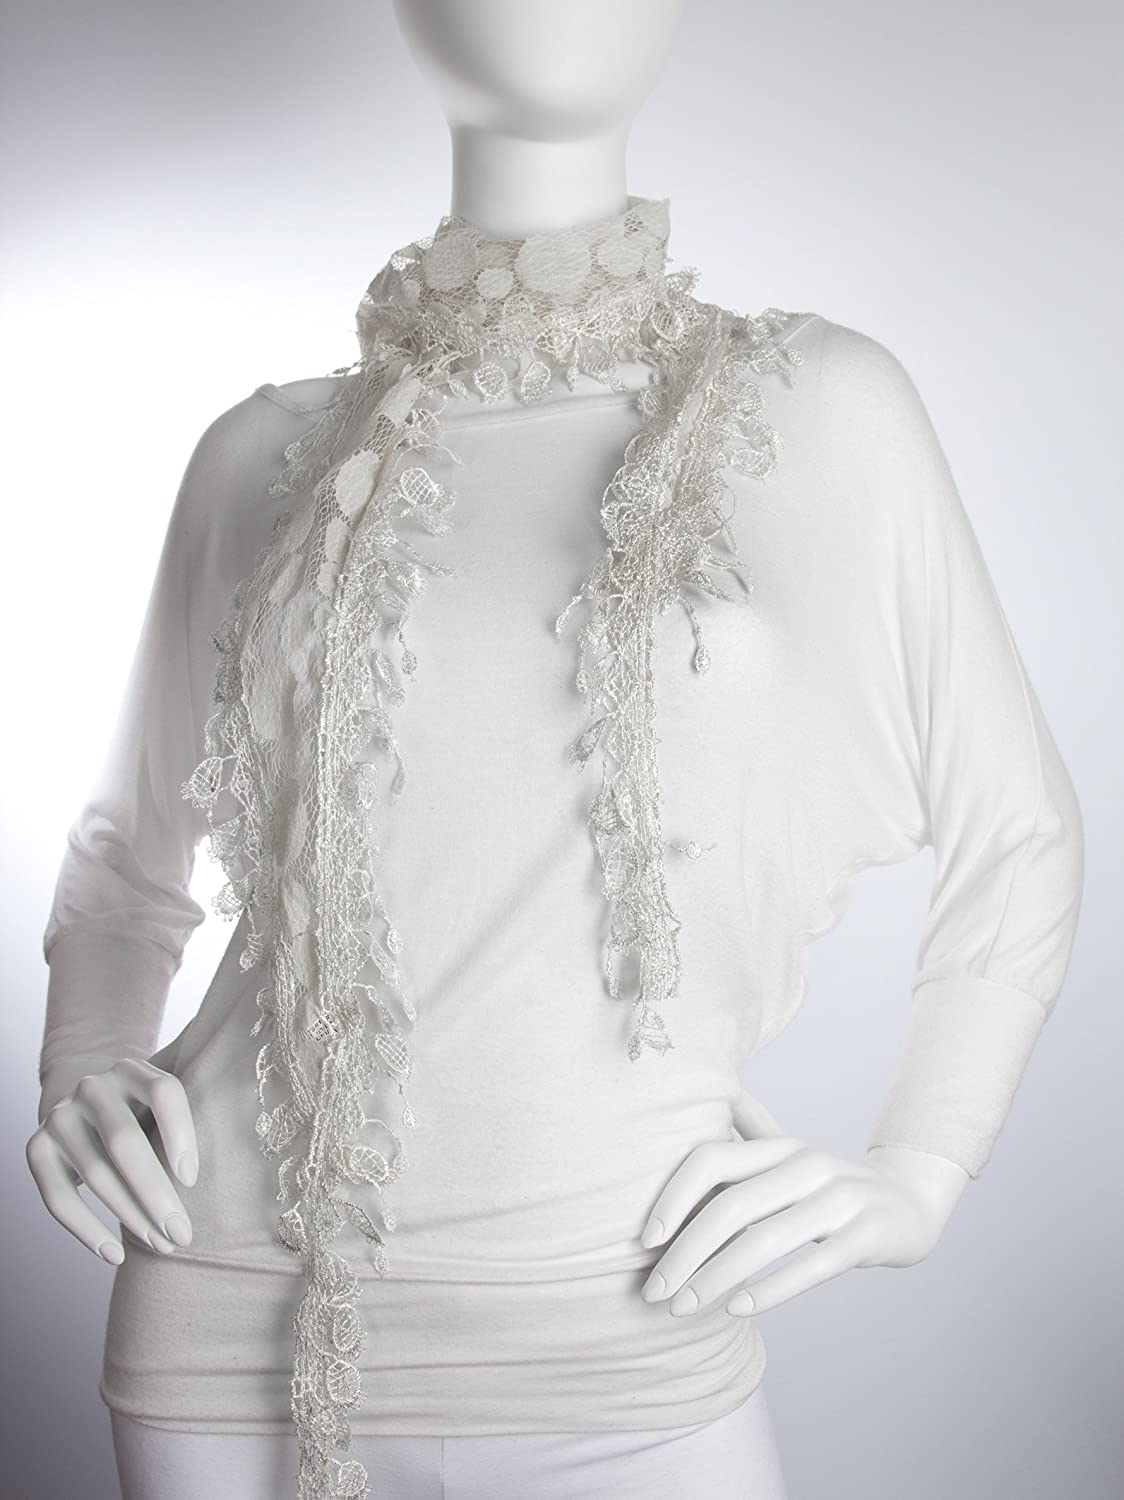 Vintage Scarves- New in the 1920s to 1960s Styles Bohomonde April Scarf Polka-dot Lace net scarf with crochet lace trim $14.95 AT vintagedancer.com